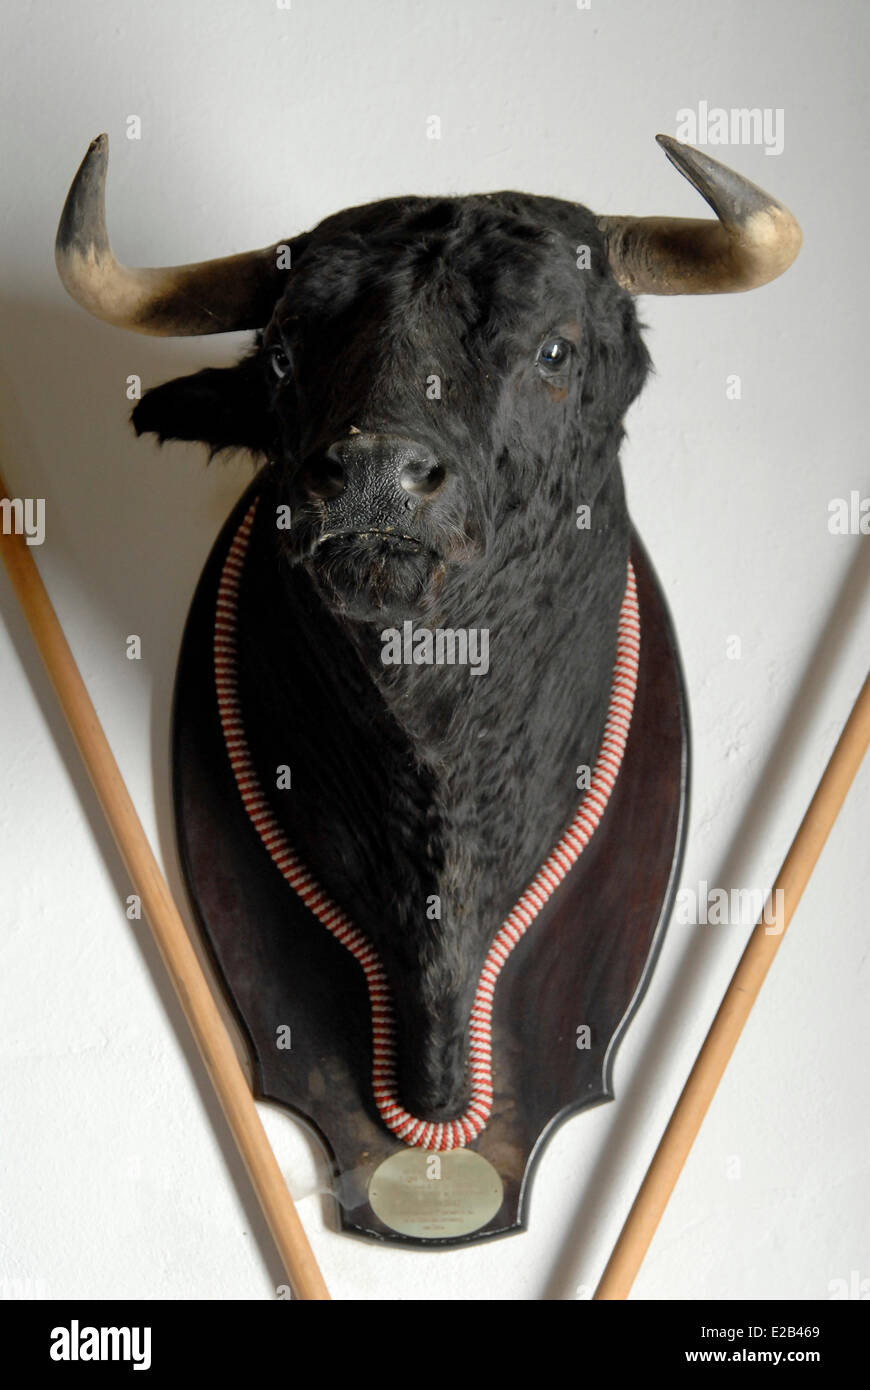 Spain, Andalucia, Almonte, Cortijo los Mimbrales, breeding bull fighting bull head naturalized - Stock Image